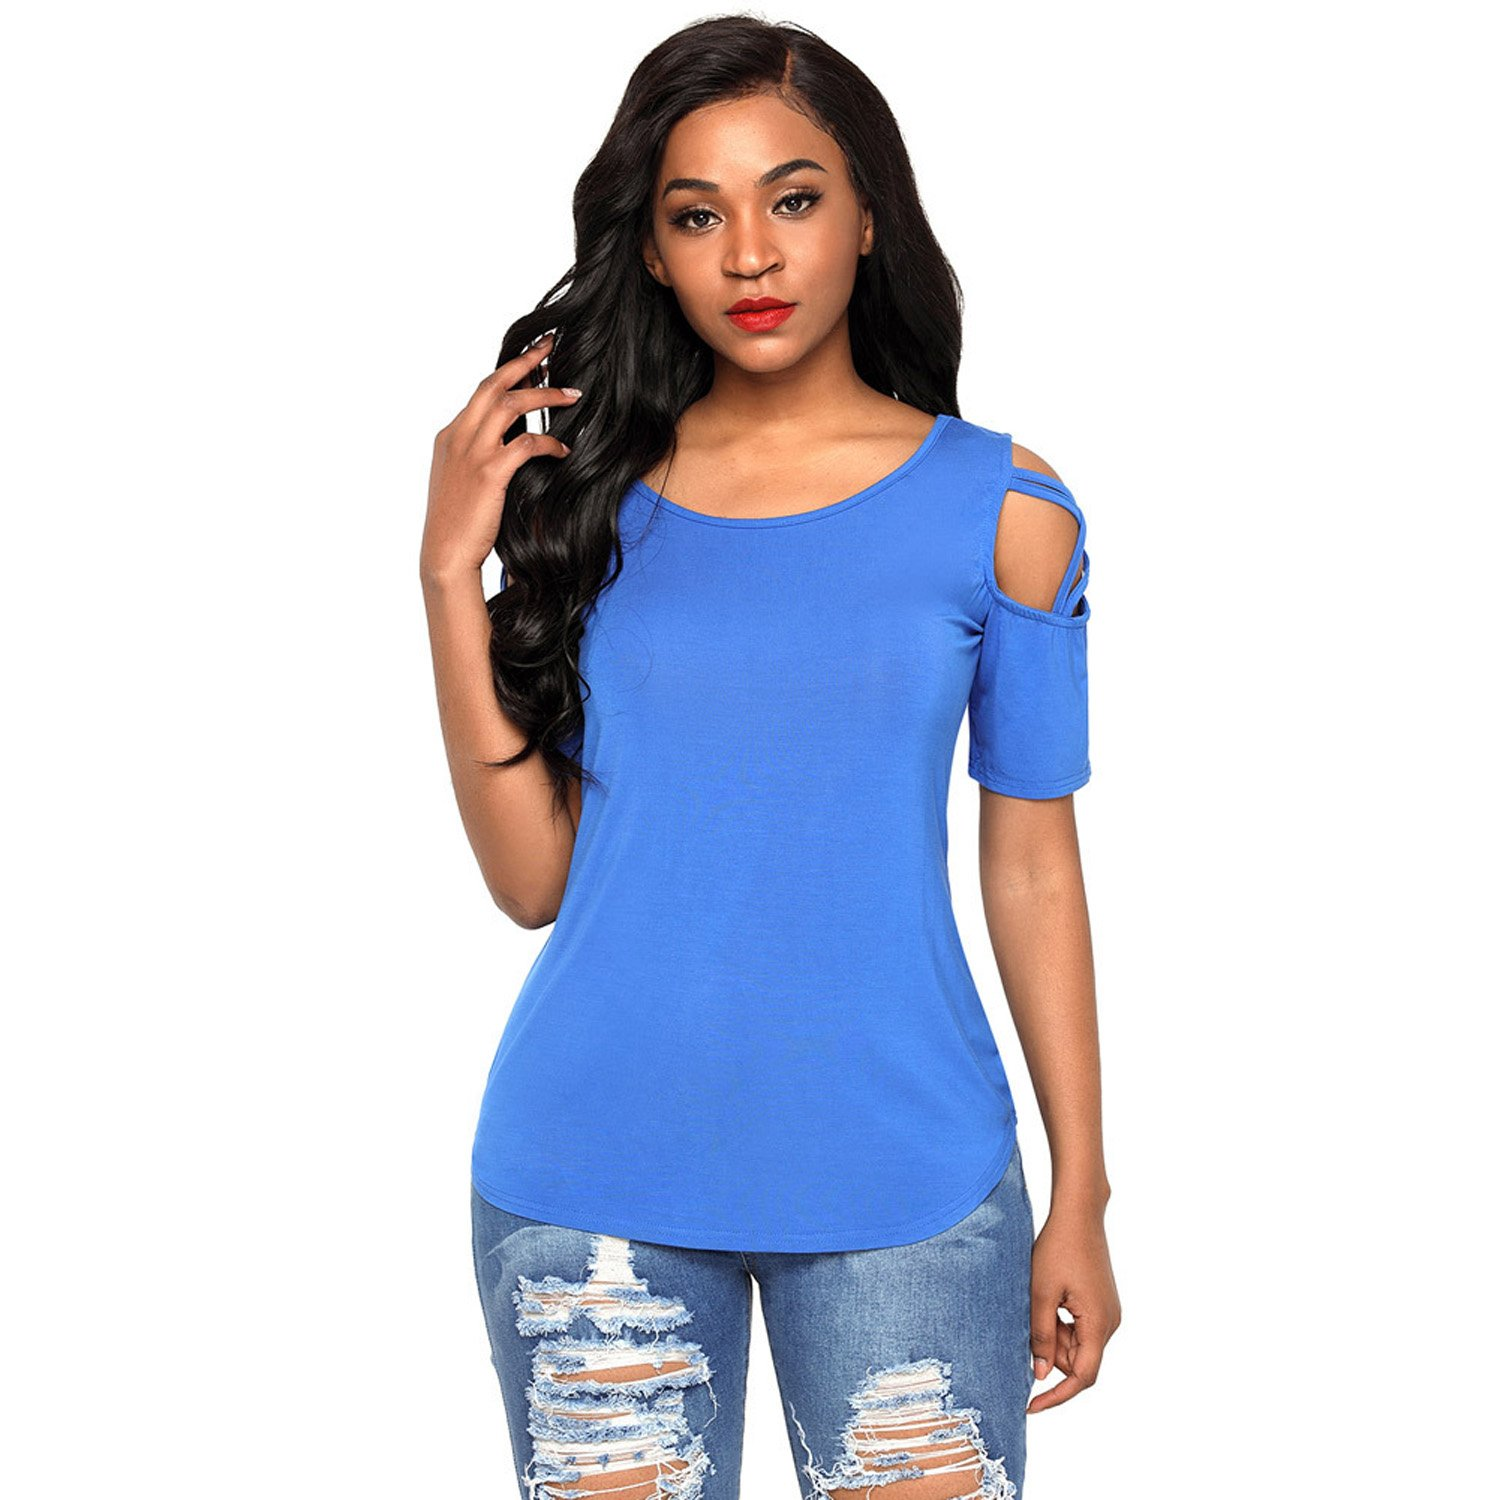 Womens Short Sleeve Blue Shirts Casual Tee Tank Tops Knot Basic Blouses Funny Fashionable Elegant Simple Work Wear (Blue, L)